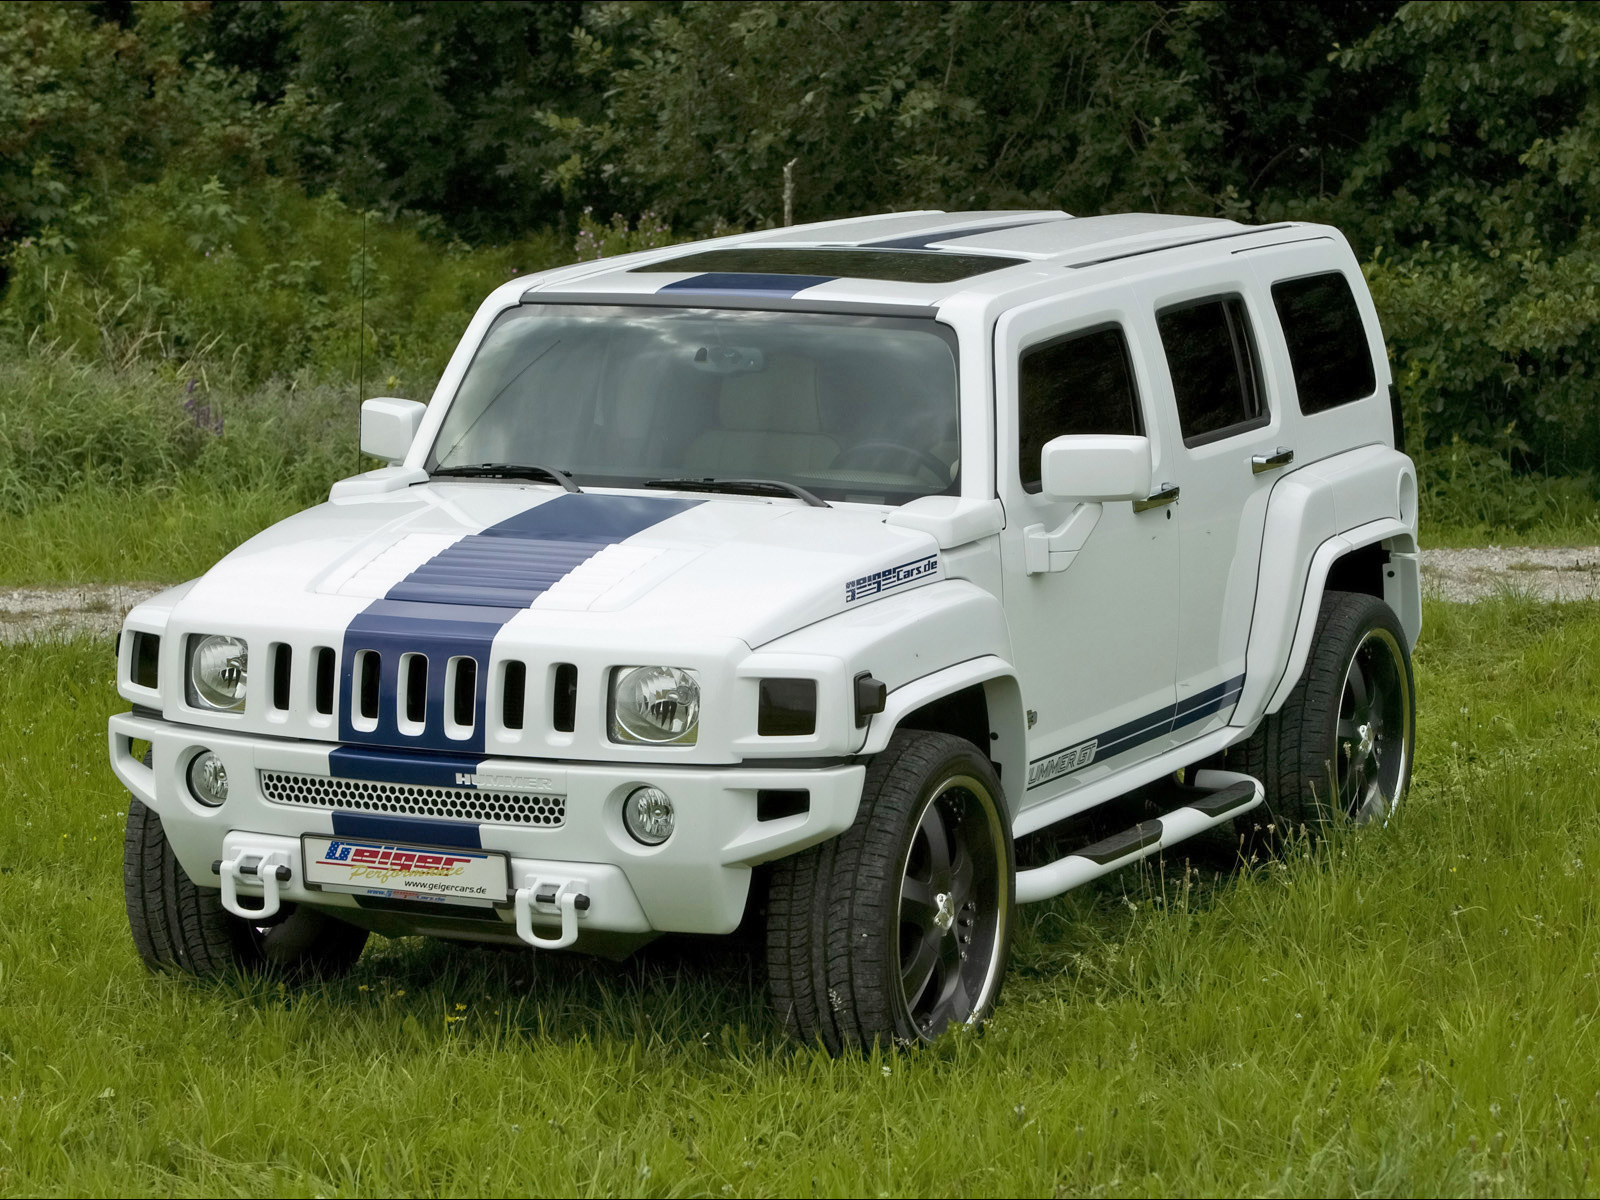 Geigercars Hummer H3 GT photos Gallery with 12 pics